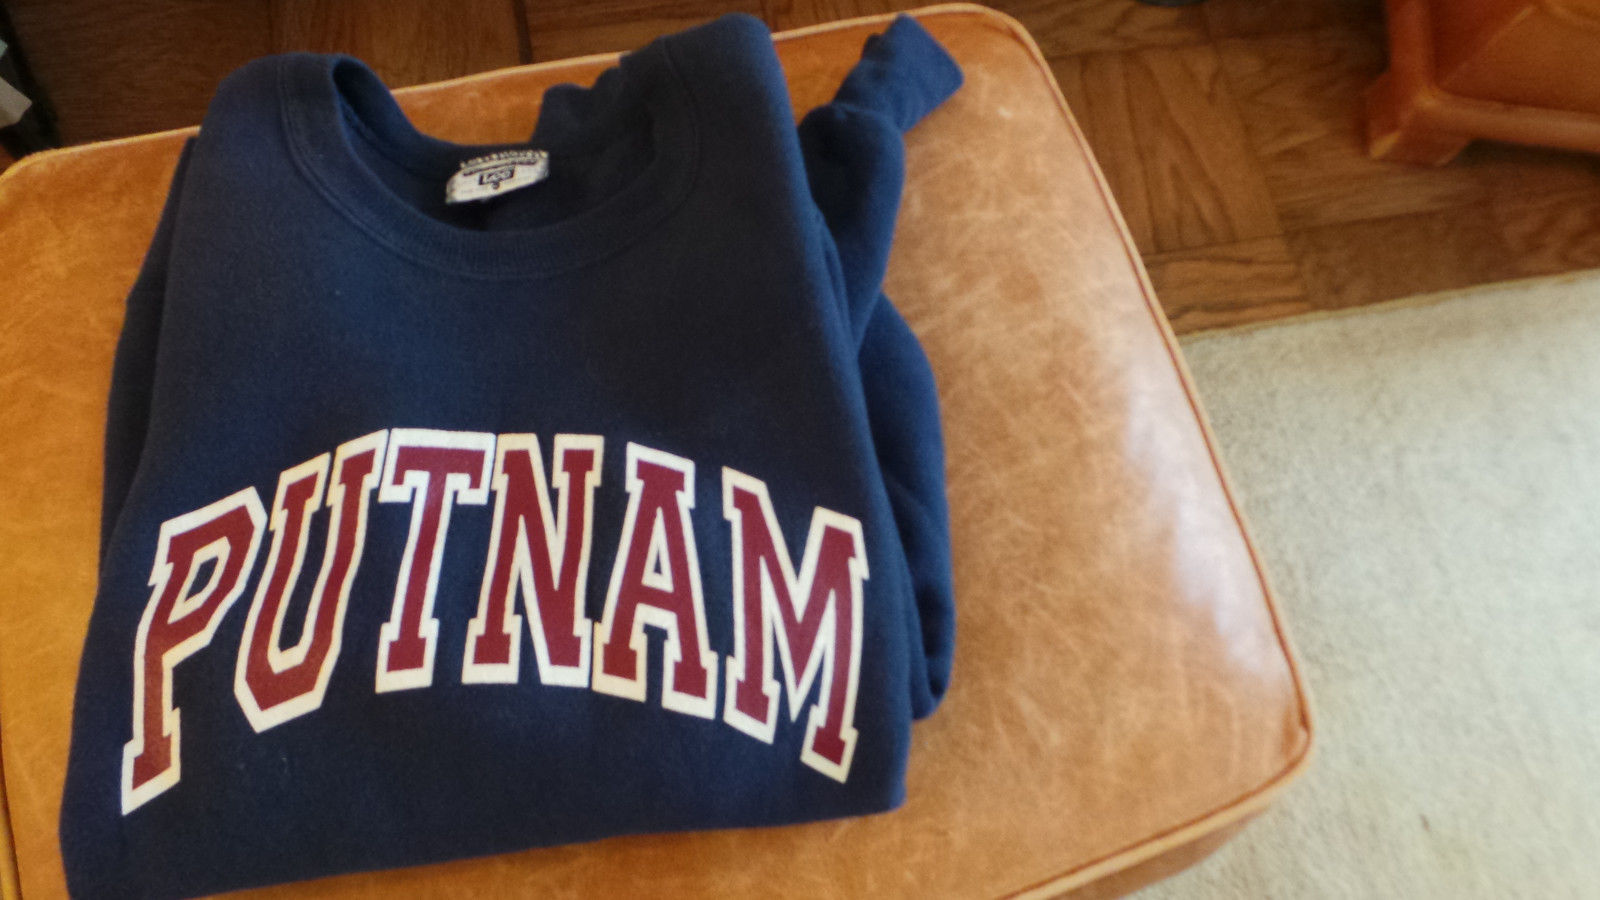 Putnam Sweatshirt Navy Color w Bold Letters Size XL Made in USA by Lee VG+ image 6